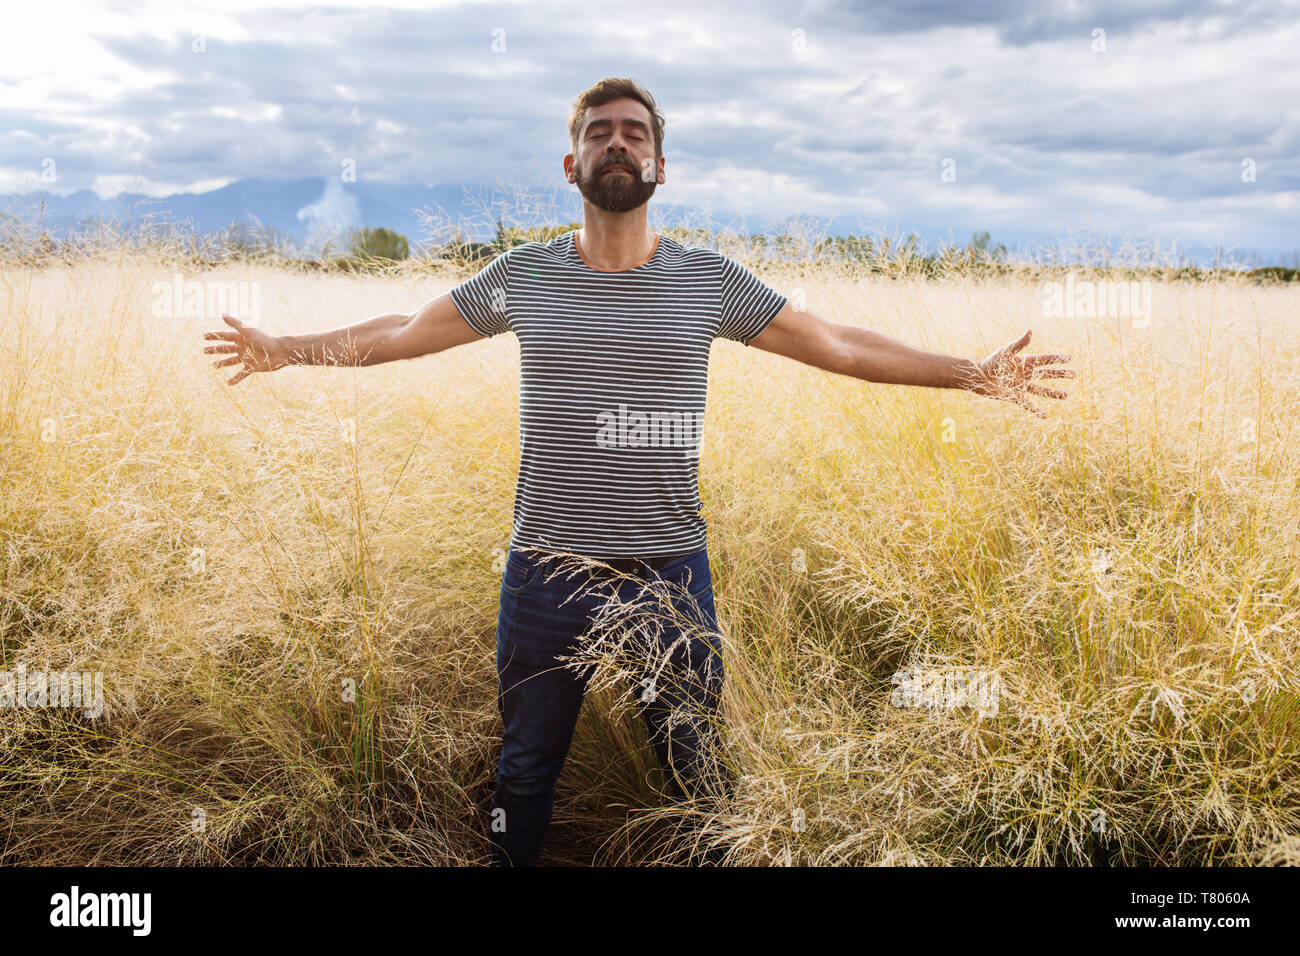 Man in his late thirties mid-fourties, posing with open arms and eyes closed in a yellow grass field in Bodega Septima Winery in Mendoza, Argentina Stock Photo